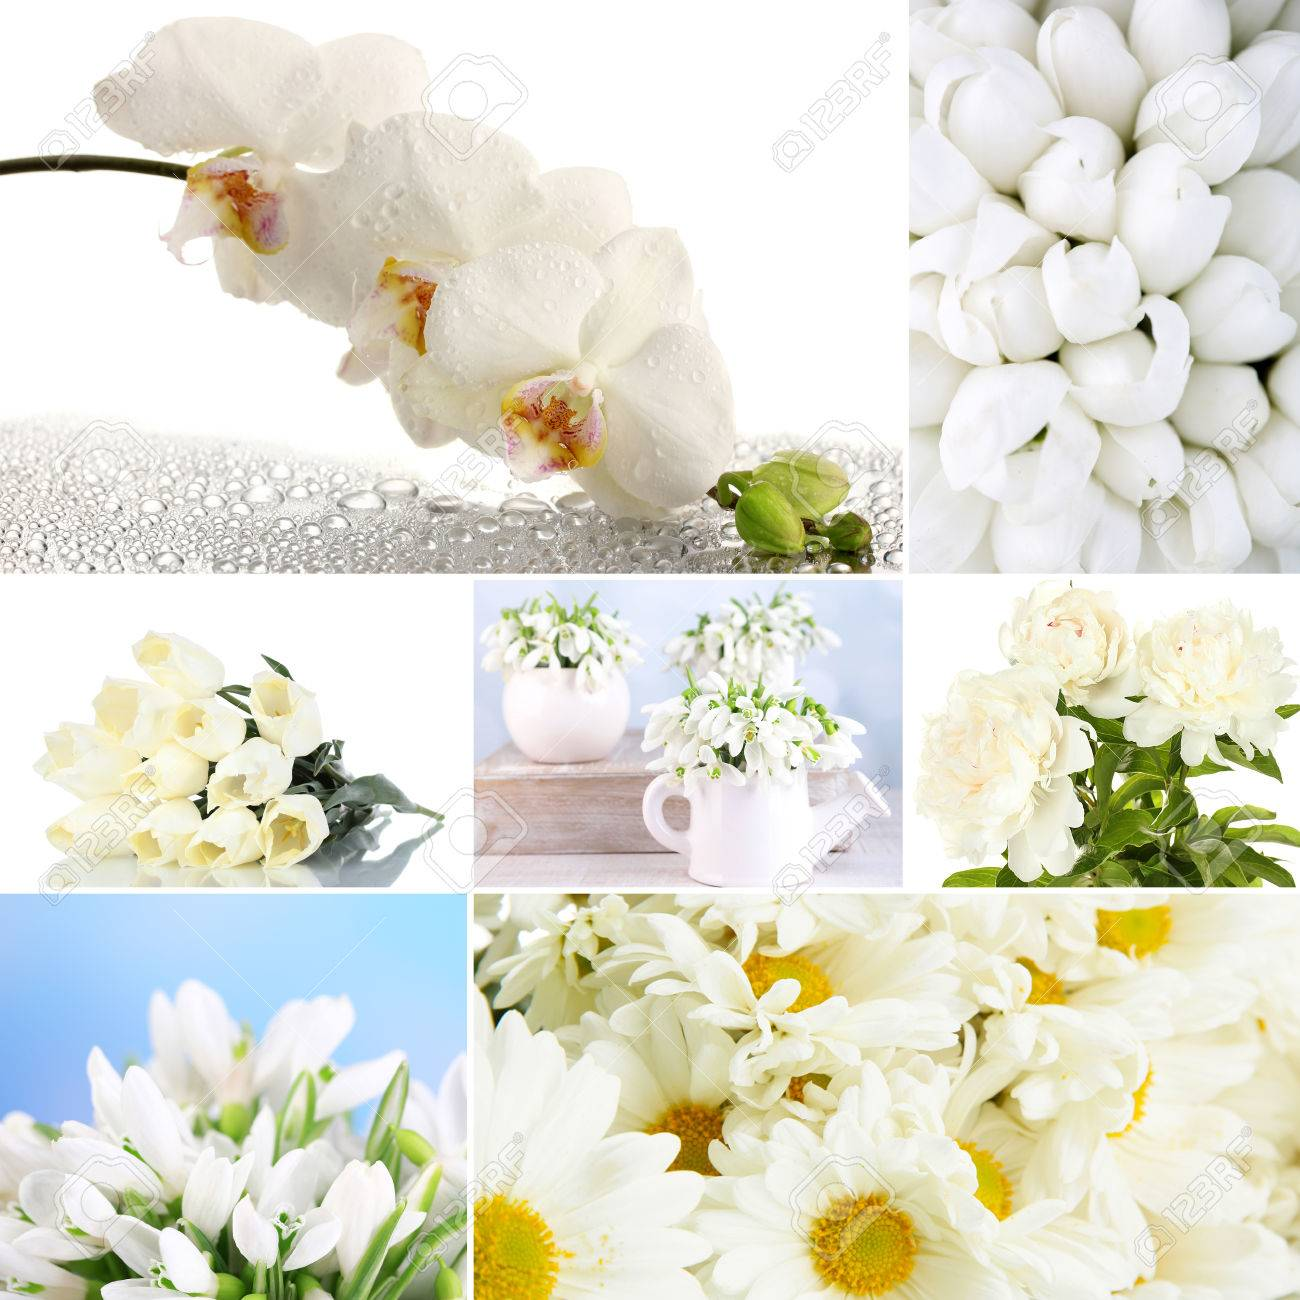 Collage Of Different White Flowers Stock Photo Picture And Royalty